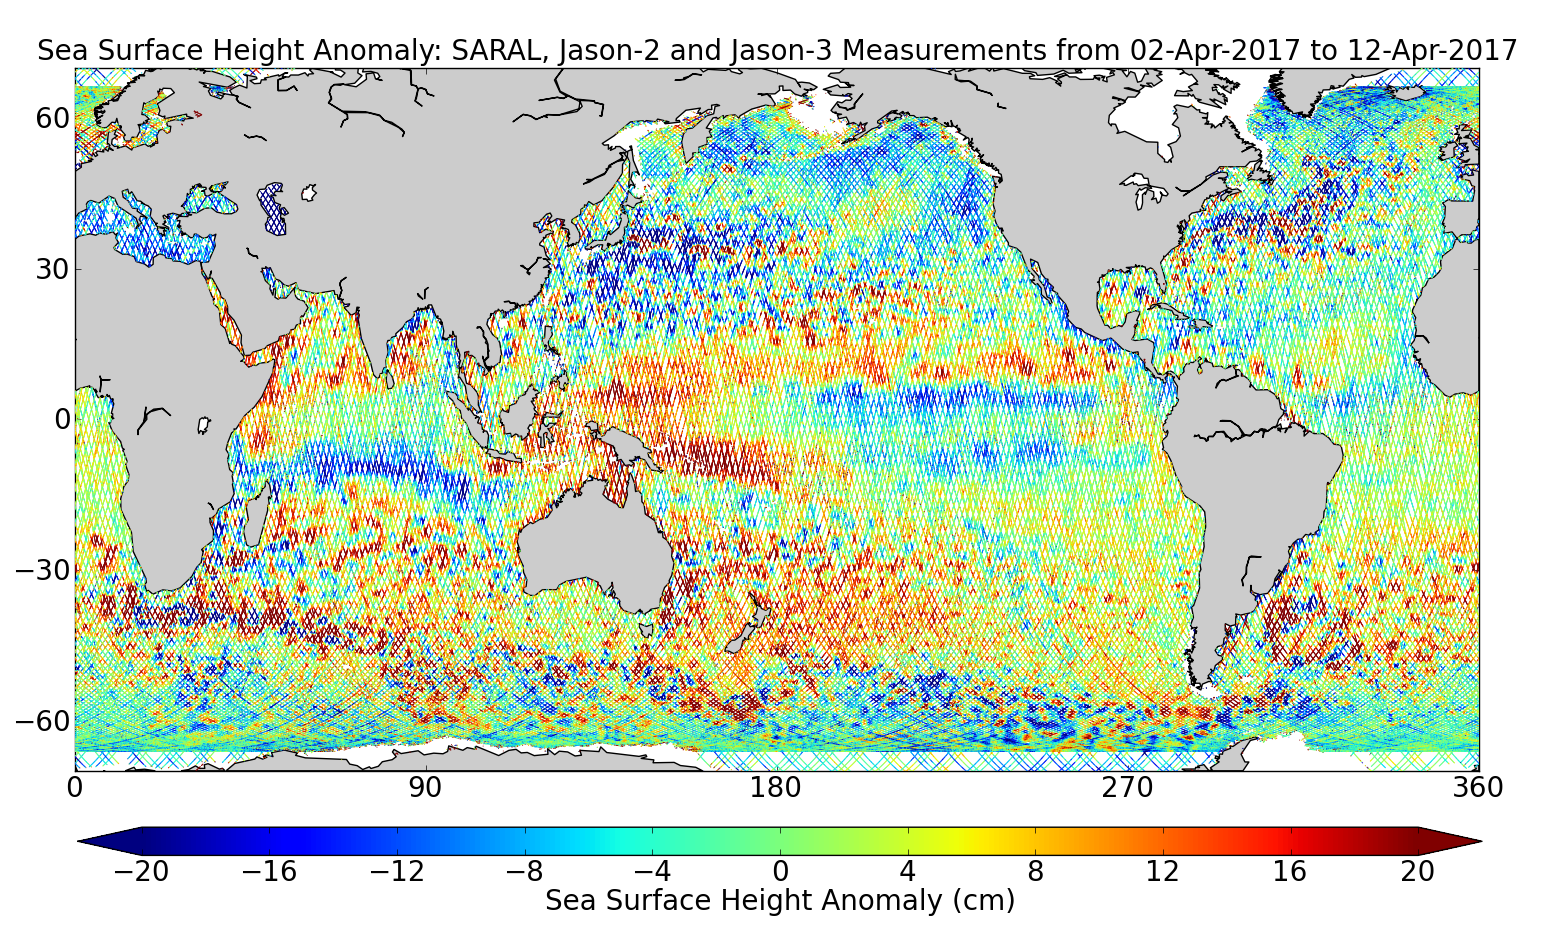 Sea Surface Height Anomaly: SARAL, Jason-2 and Jason-3 Measurements from 02-Apr-2017 to 12-Apr-2017